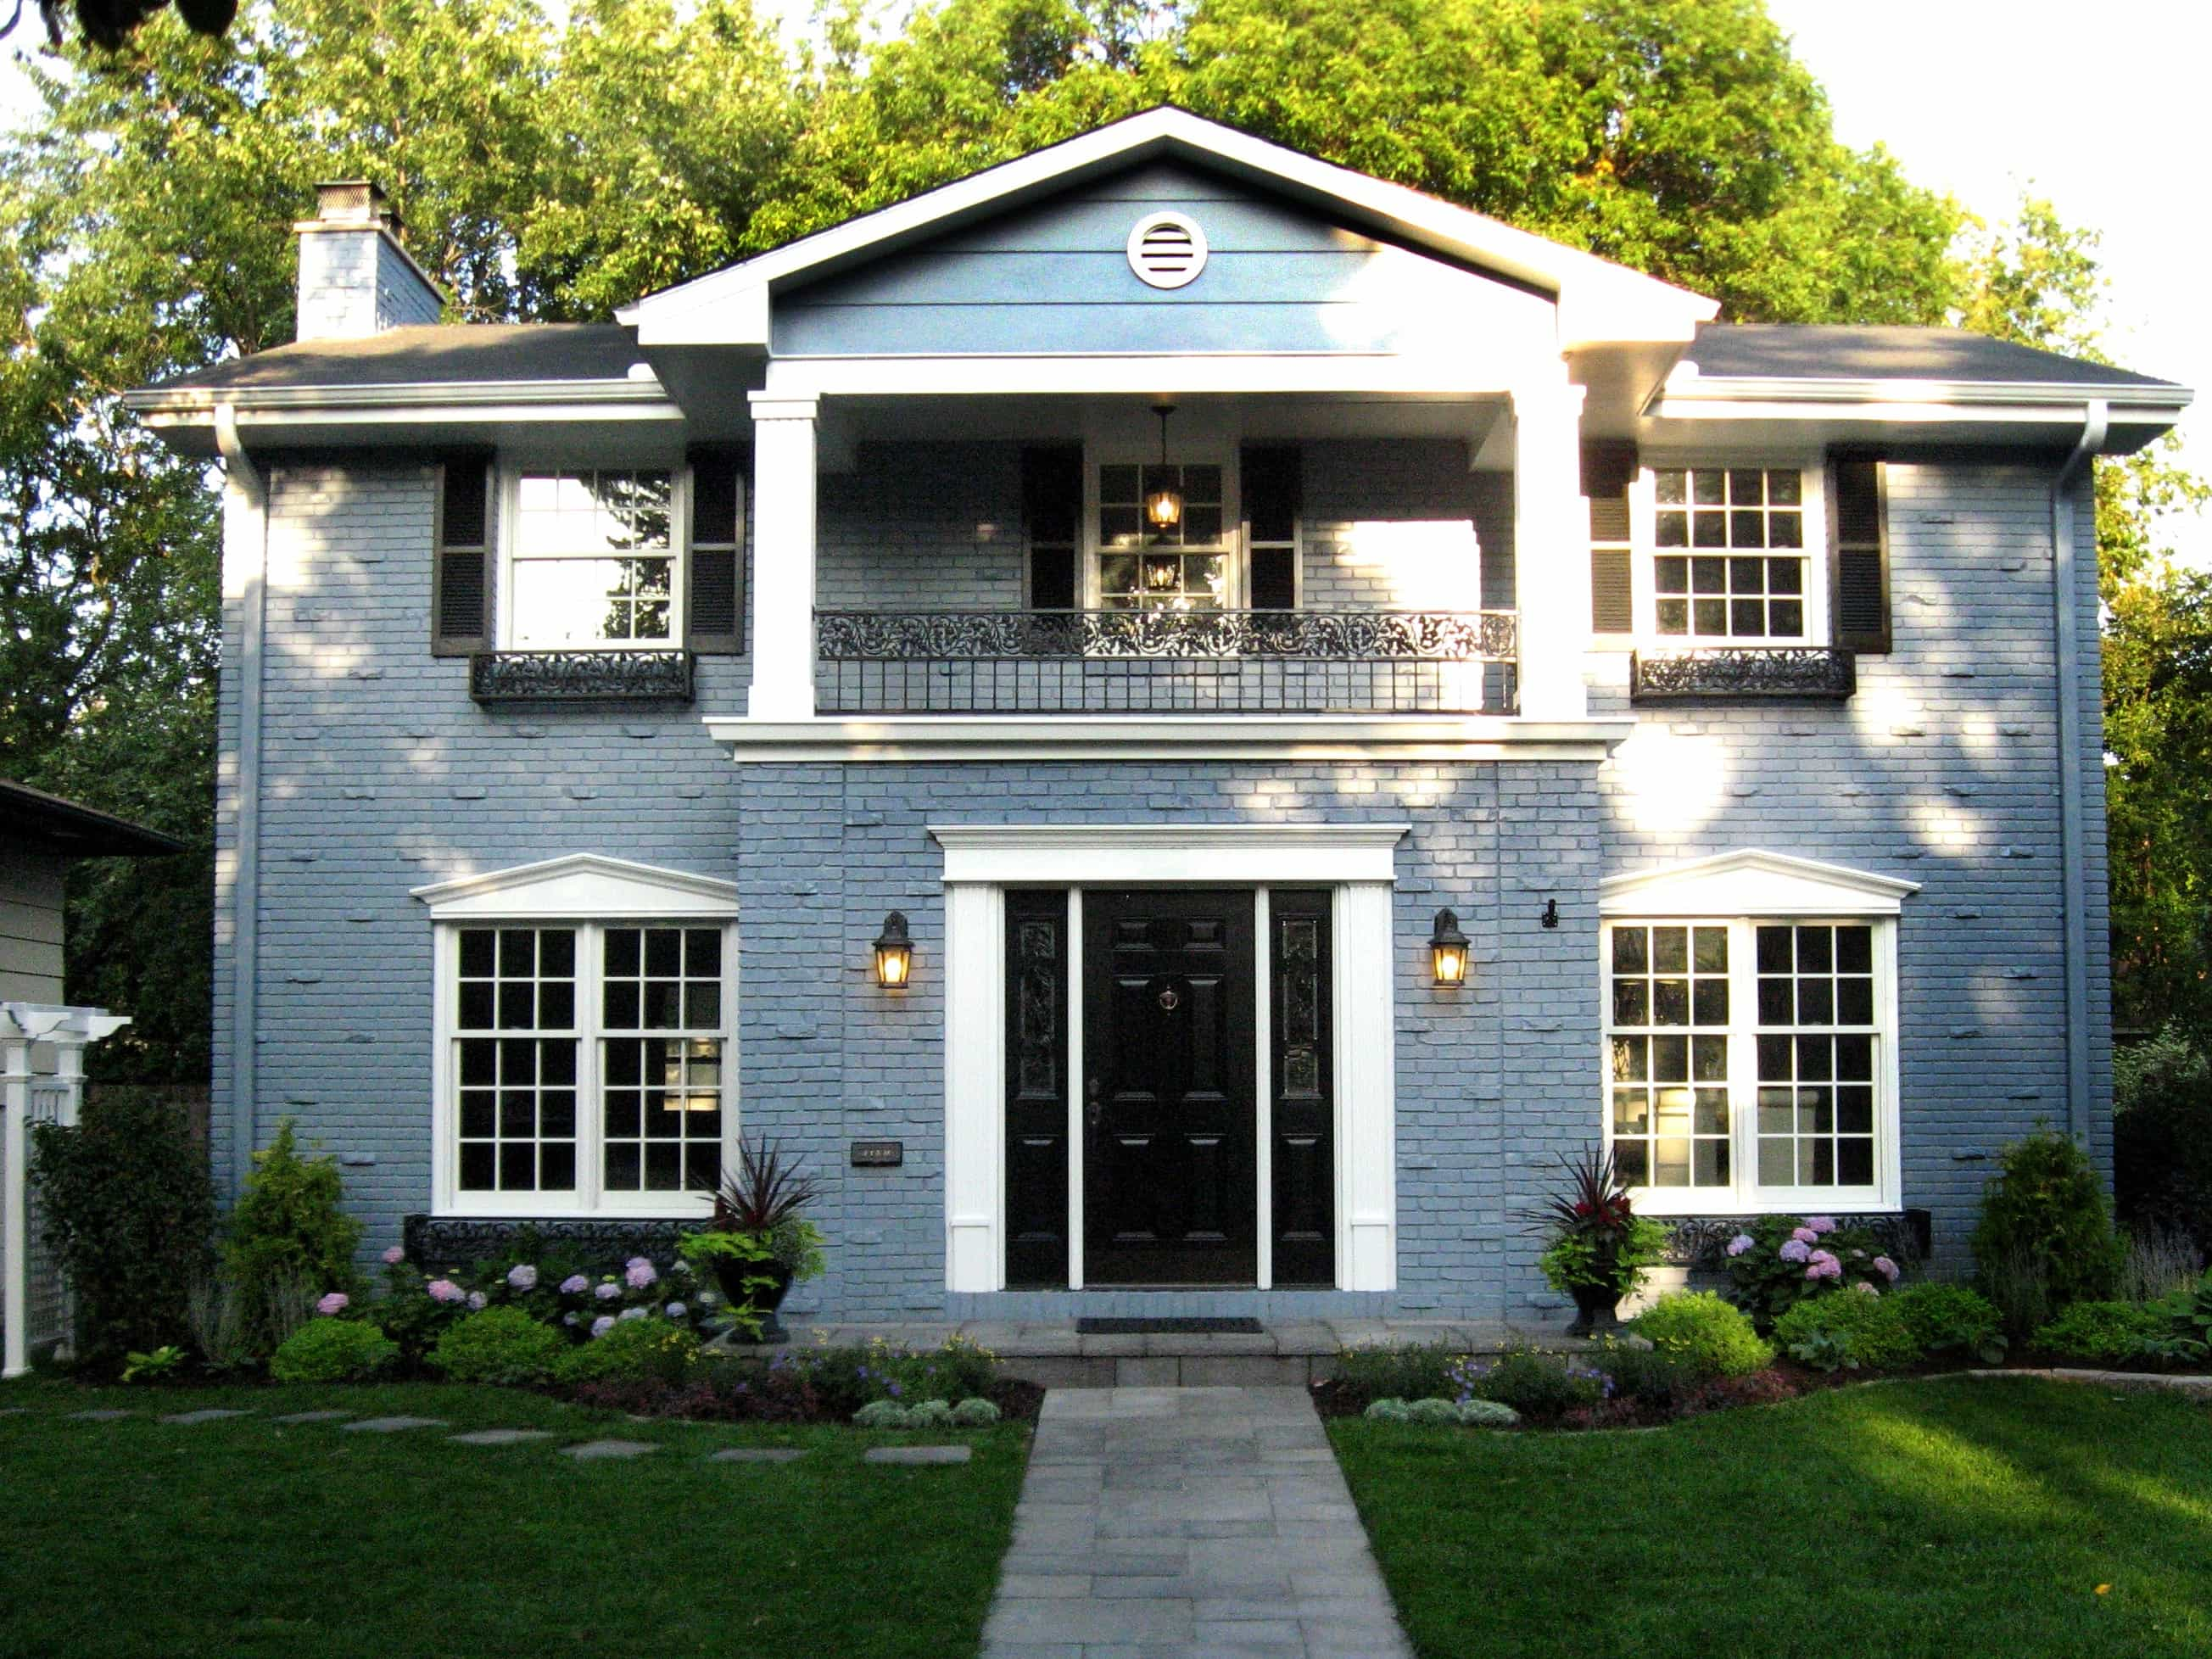 Vinyl Shutters For Colonial Brick Wall House Exterior (View 6 of 8)